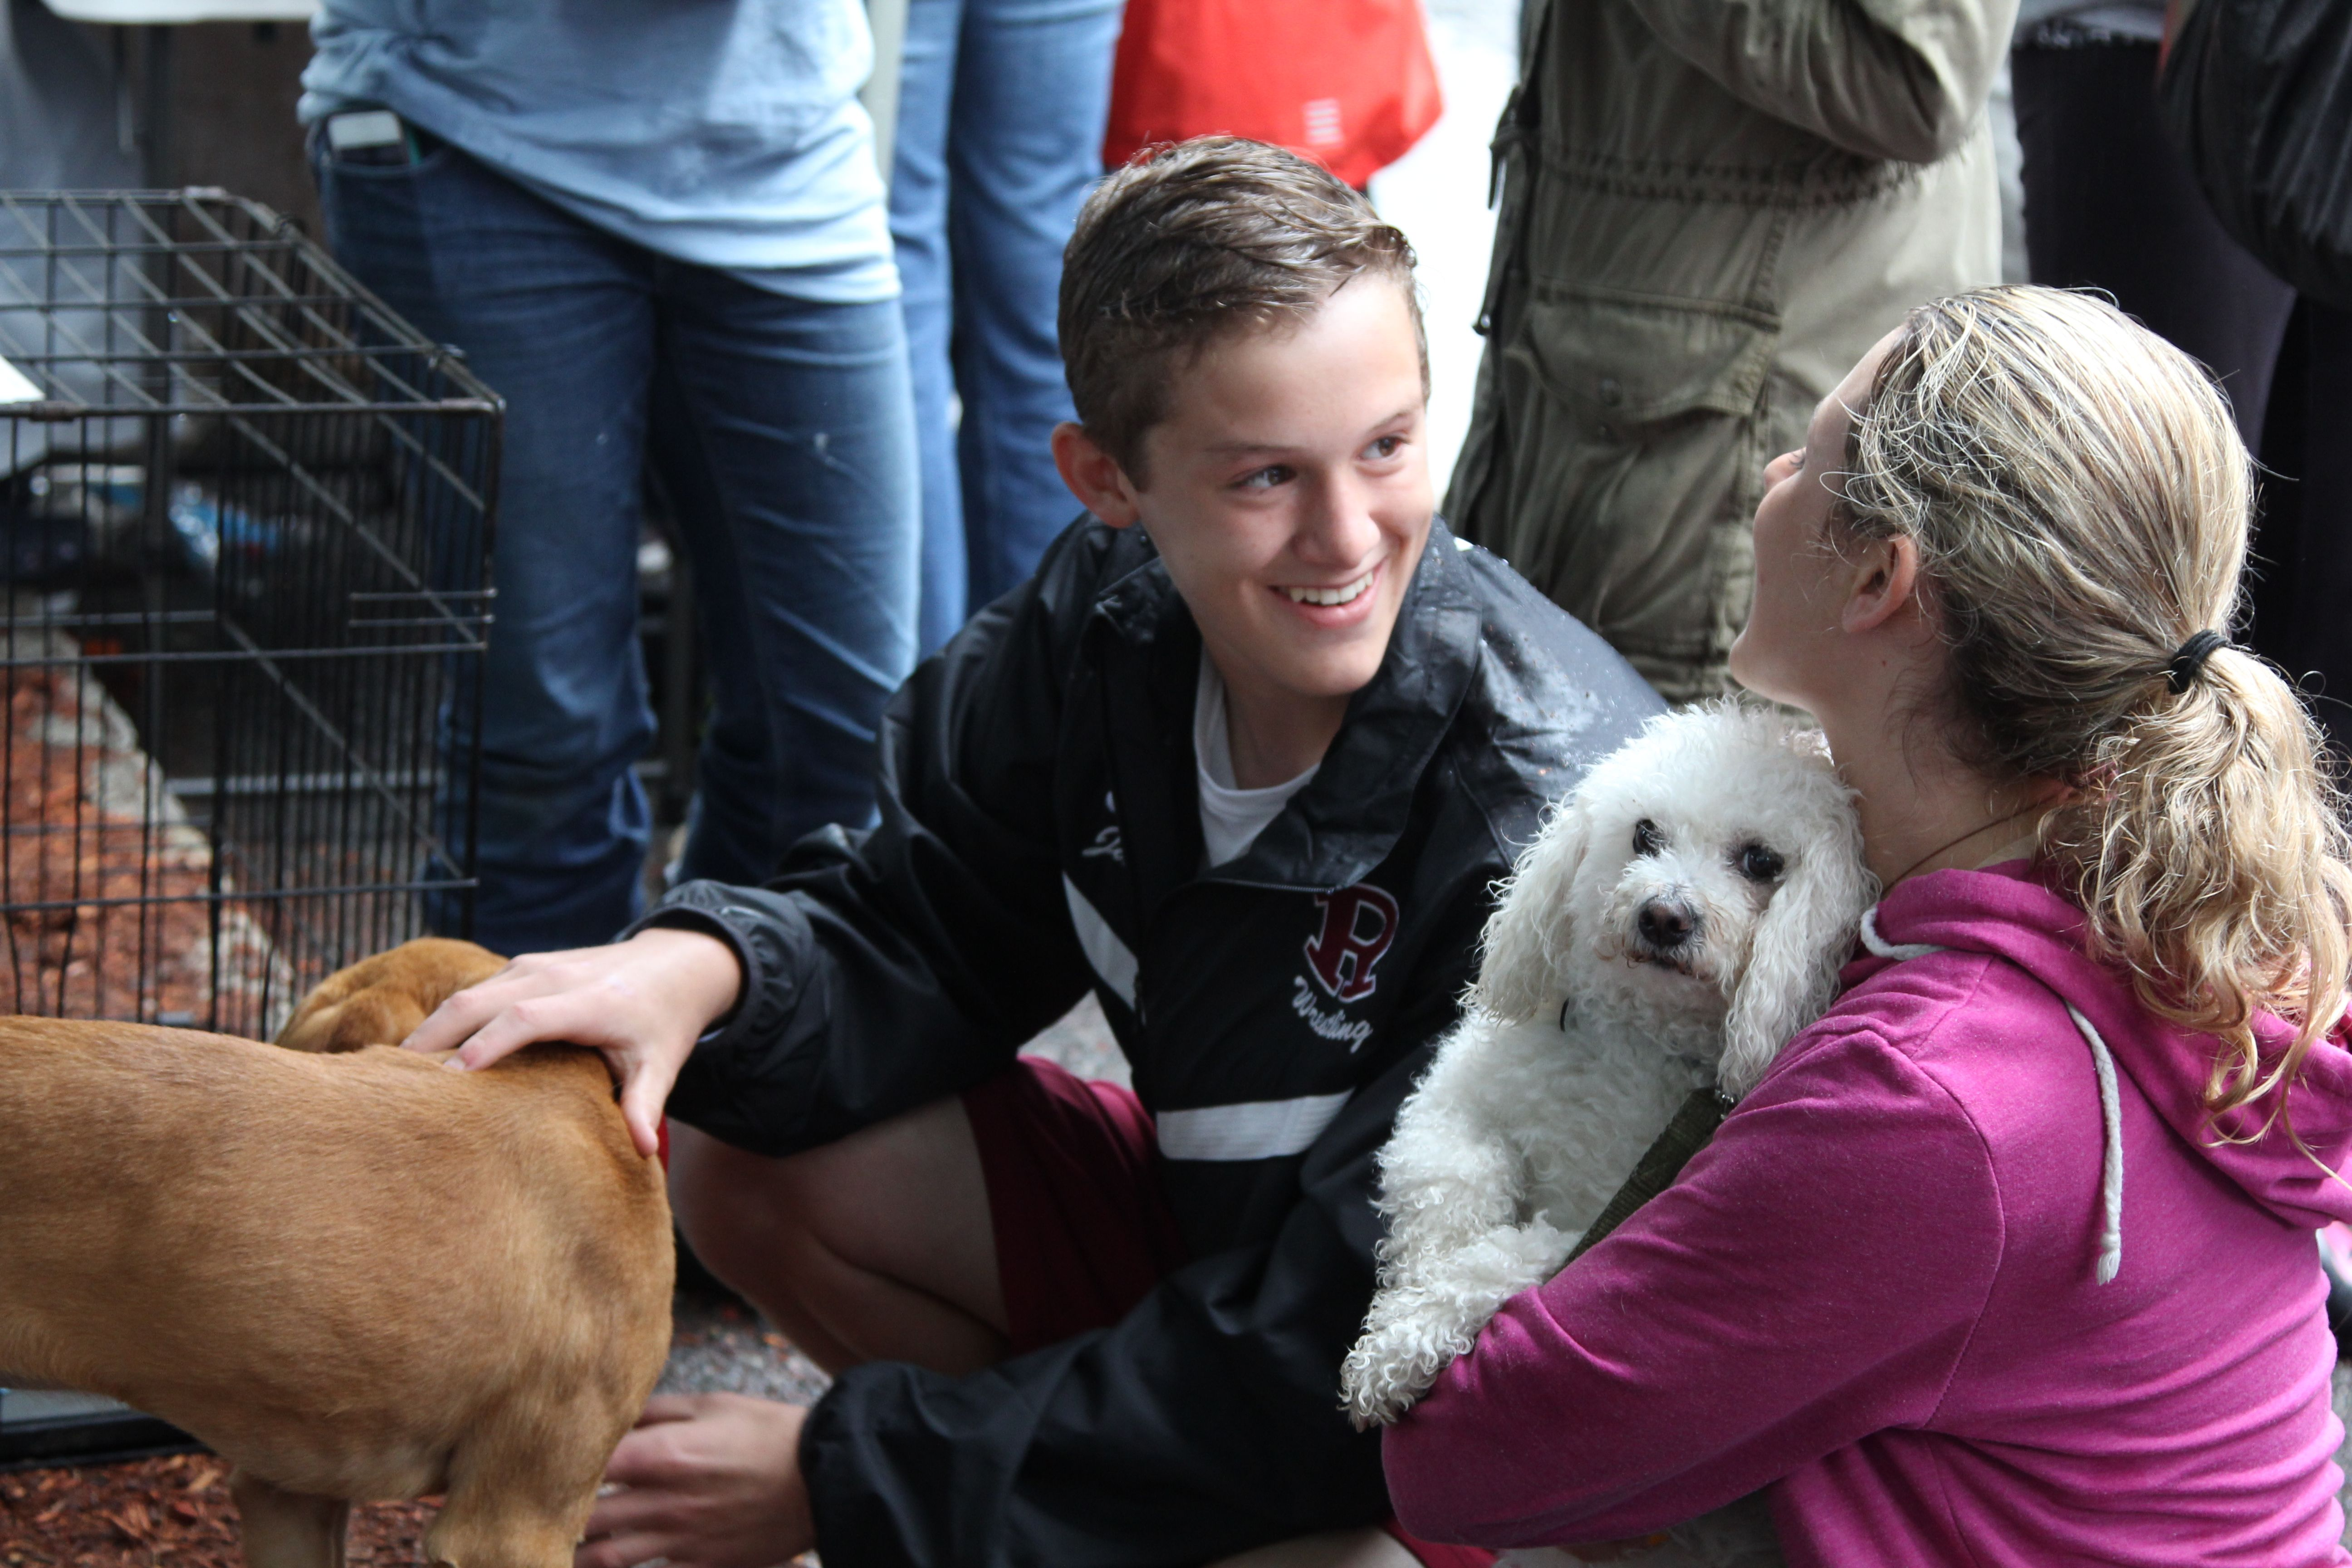 Lots of love for all the animals! Pet day, Veterinary